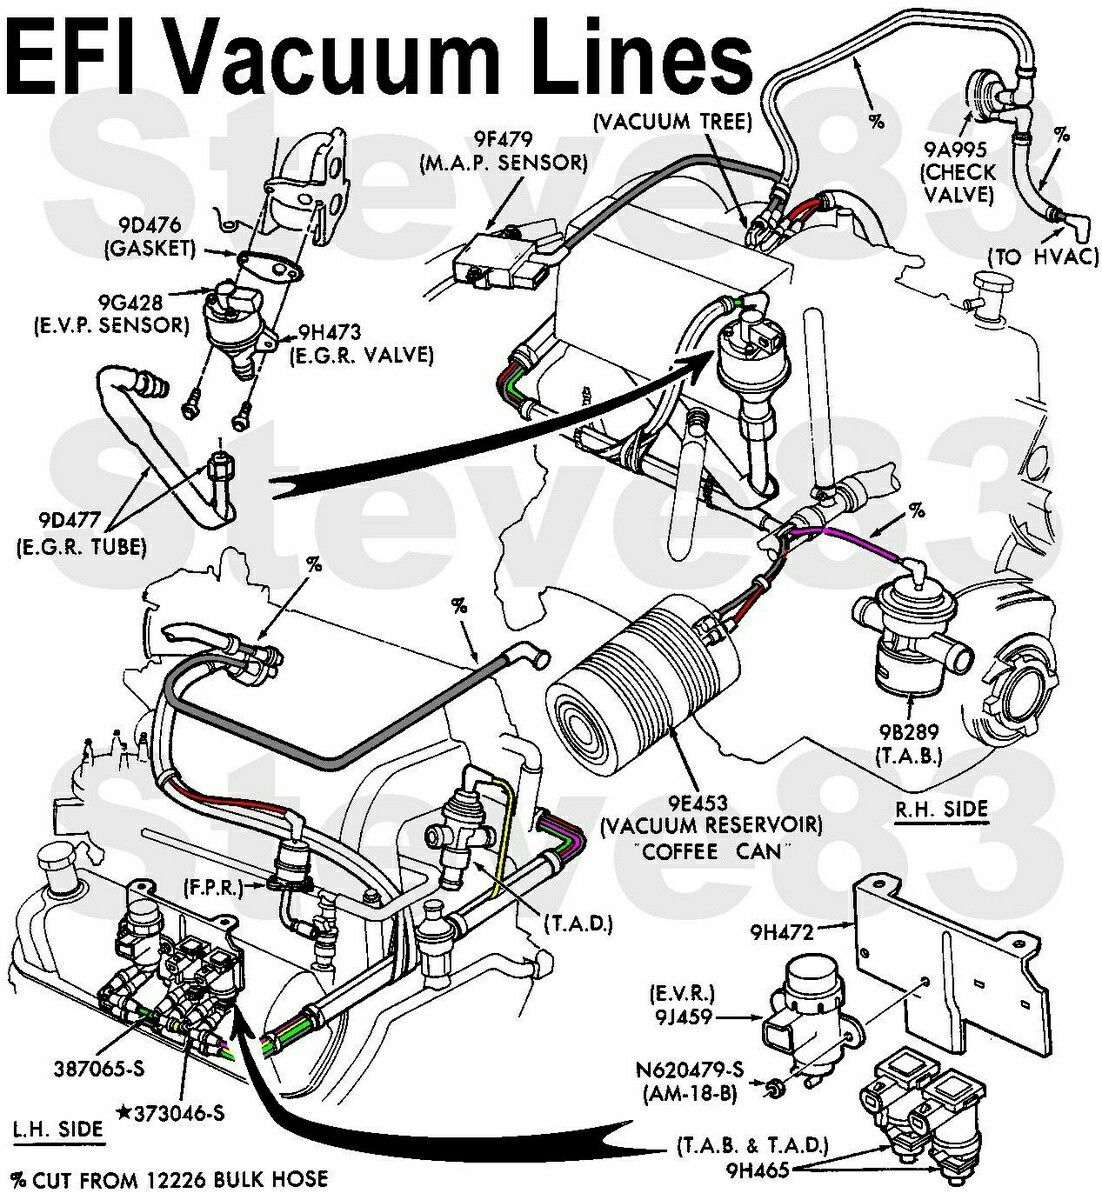 hight resolution of pin by jose zepeda on bike ford f150 xlt ford 351 1995 ford f150 ford f 150 cooling system diagram furthermore 1963 chevy pickup truck